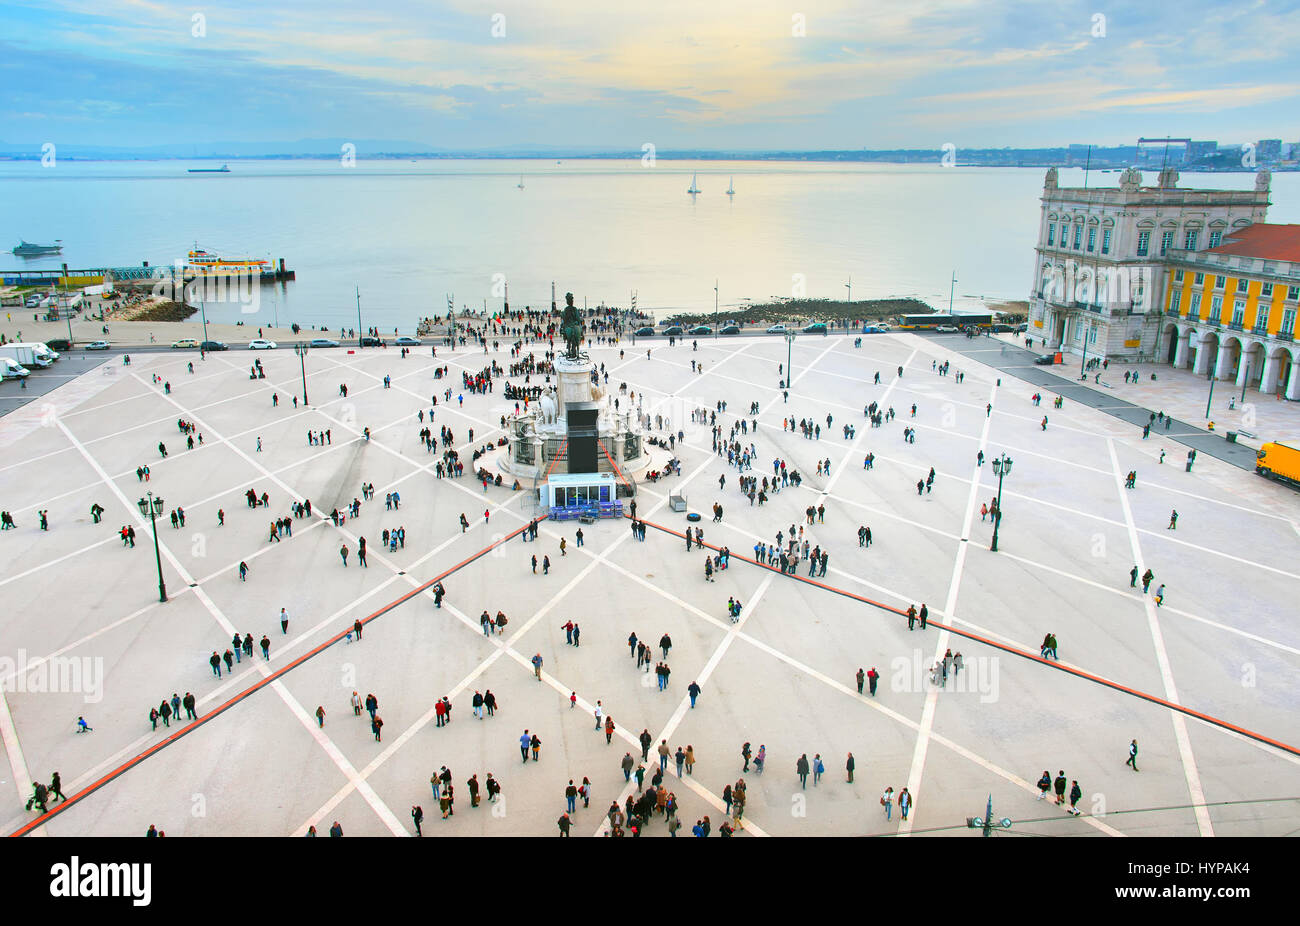 Aerial view of Commercial square. Lisbon, Portugal - Stock Image